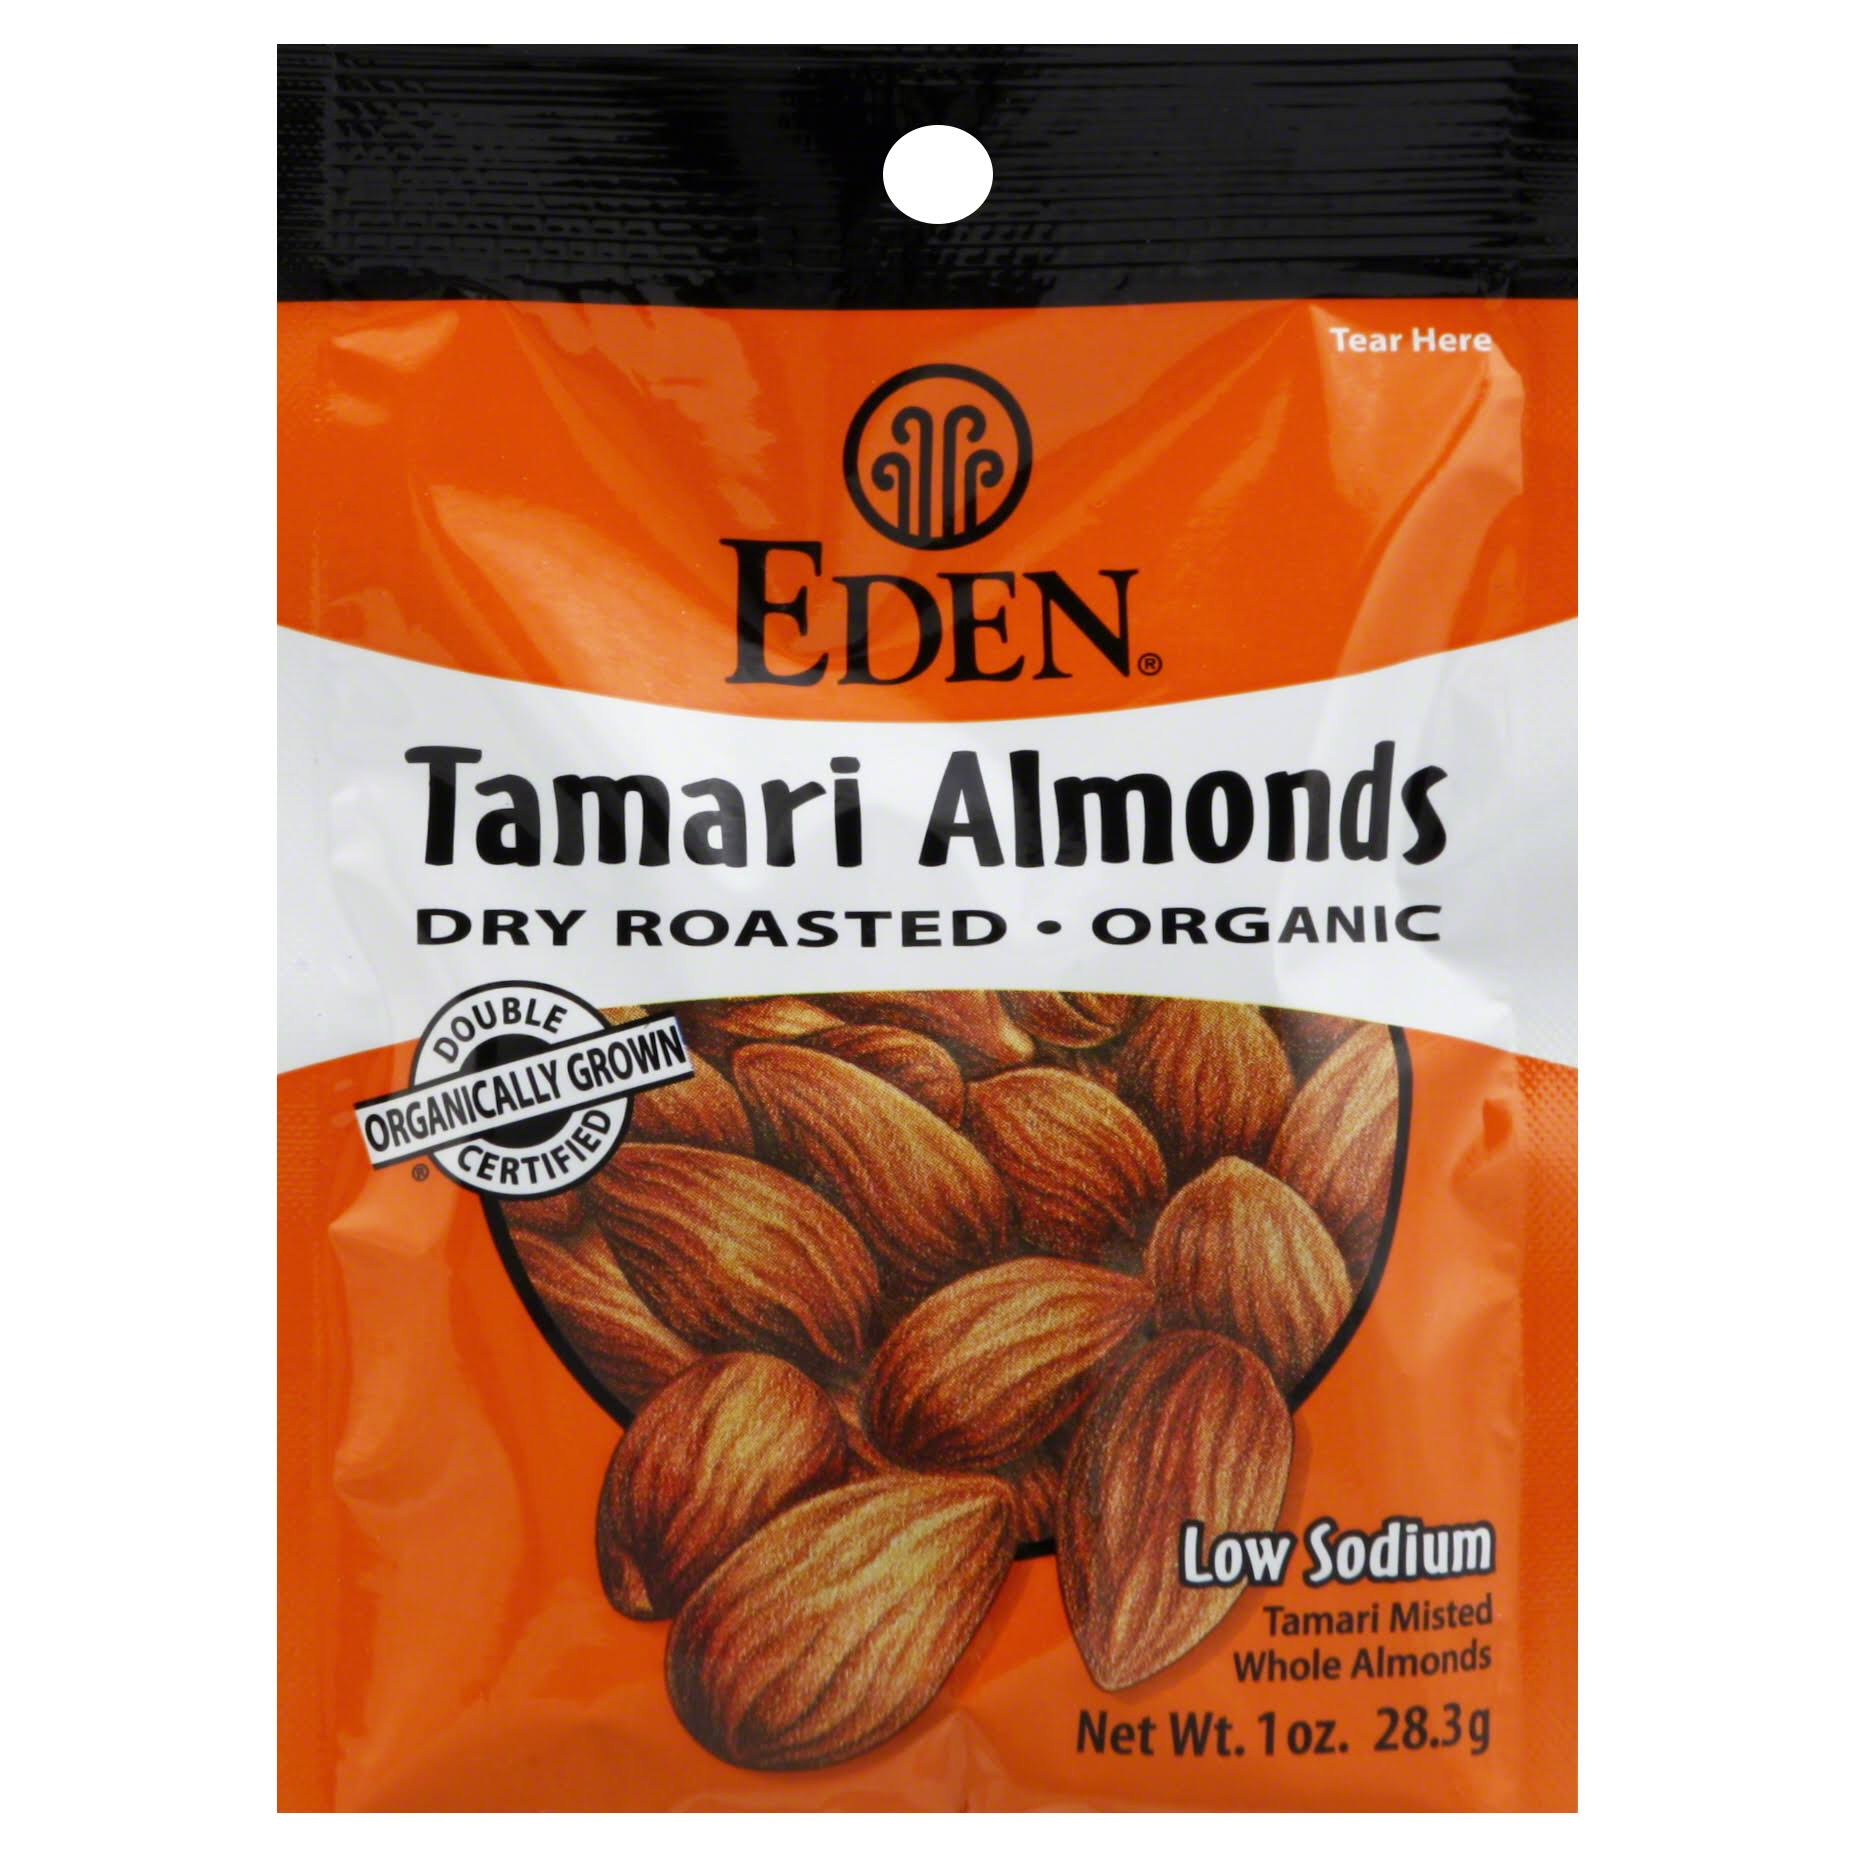 Eden Tamari Almonds - Dry Roasted, Organic, 1oz